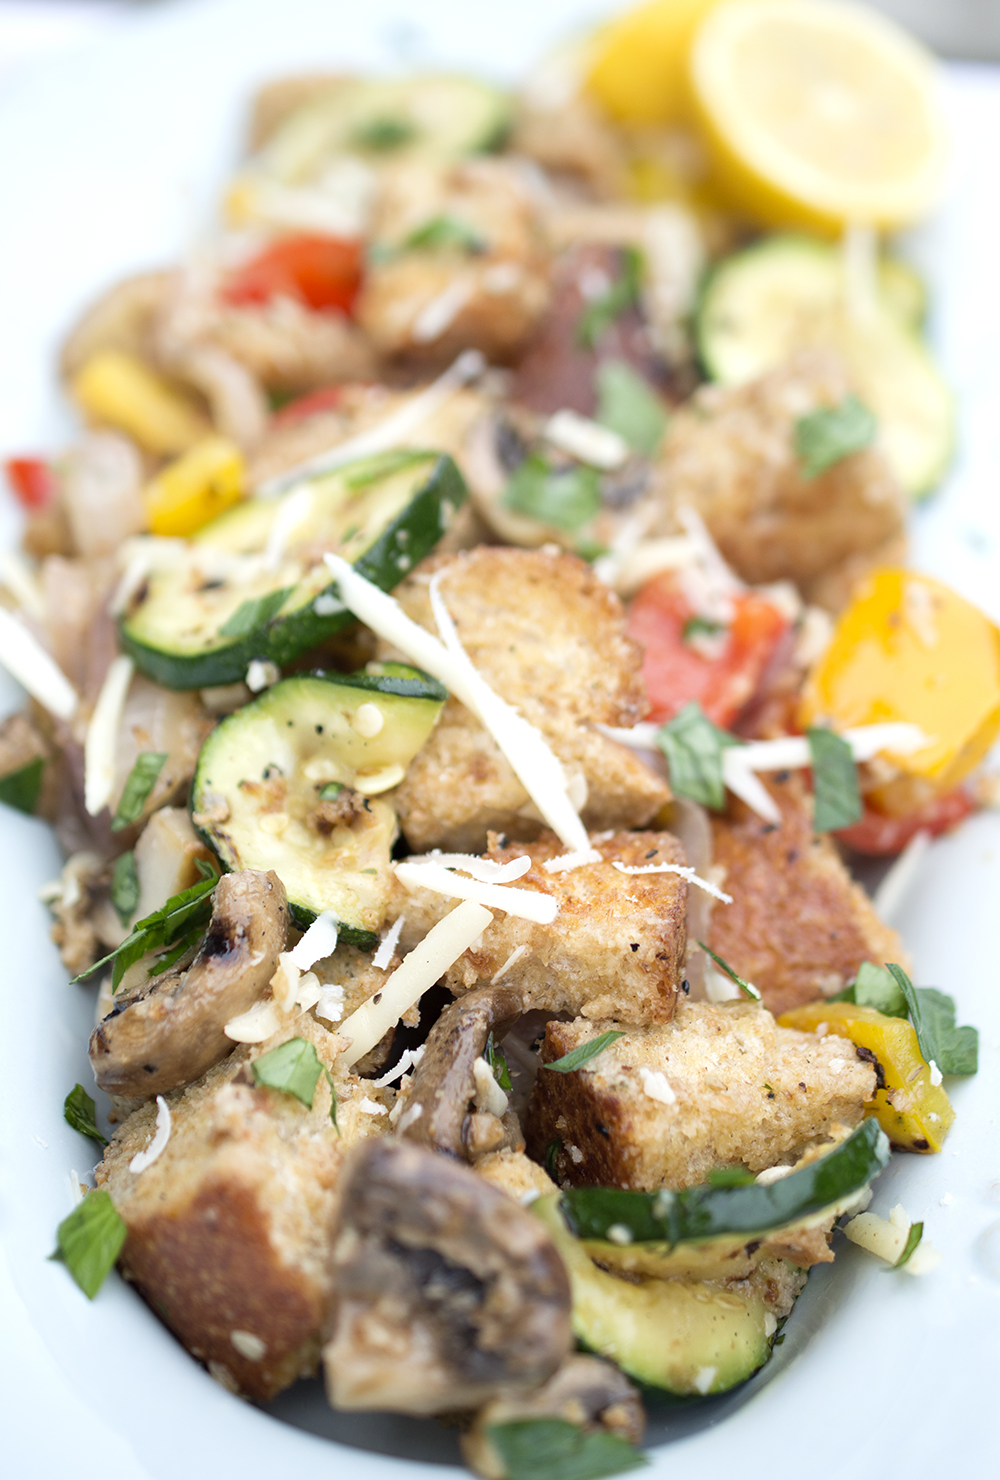 This Grilled Vegetable Panzanella Salad can be served family style on ...